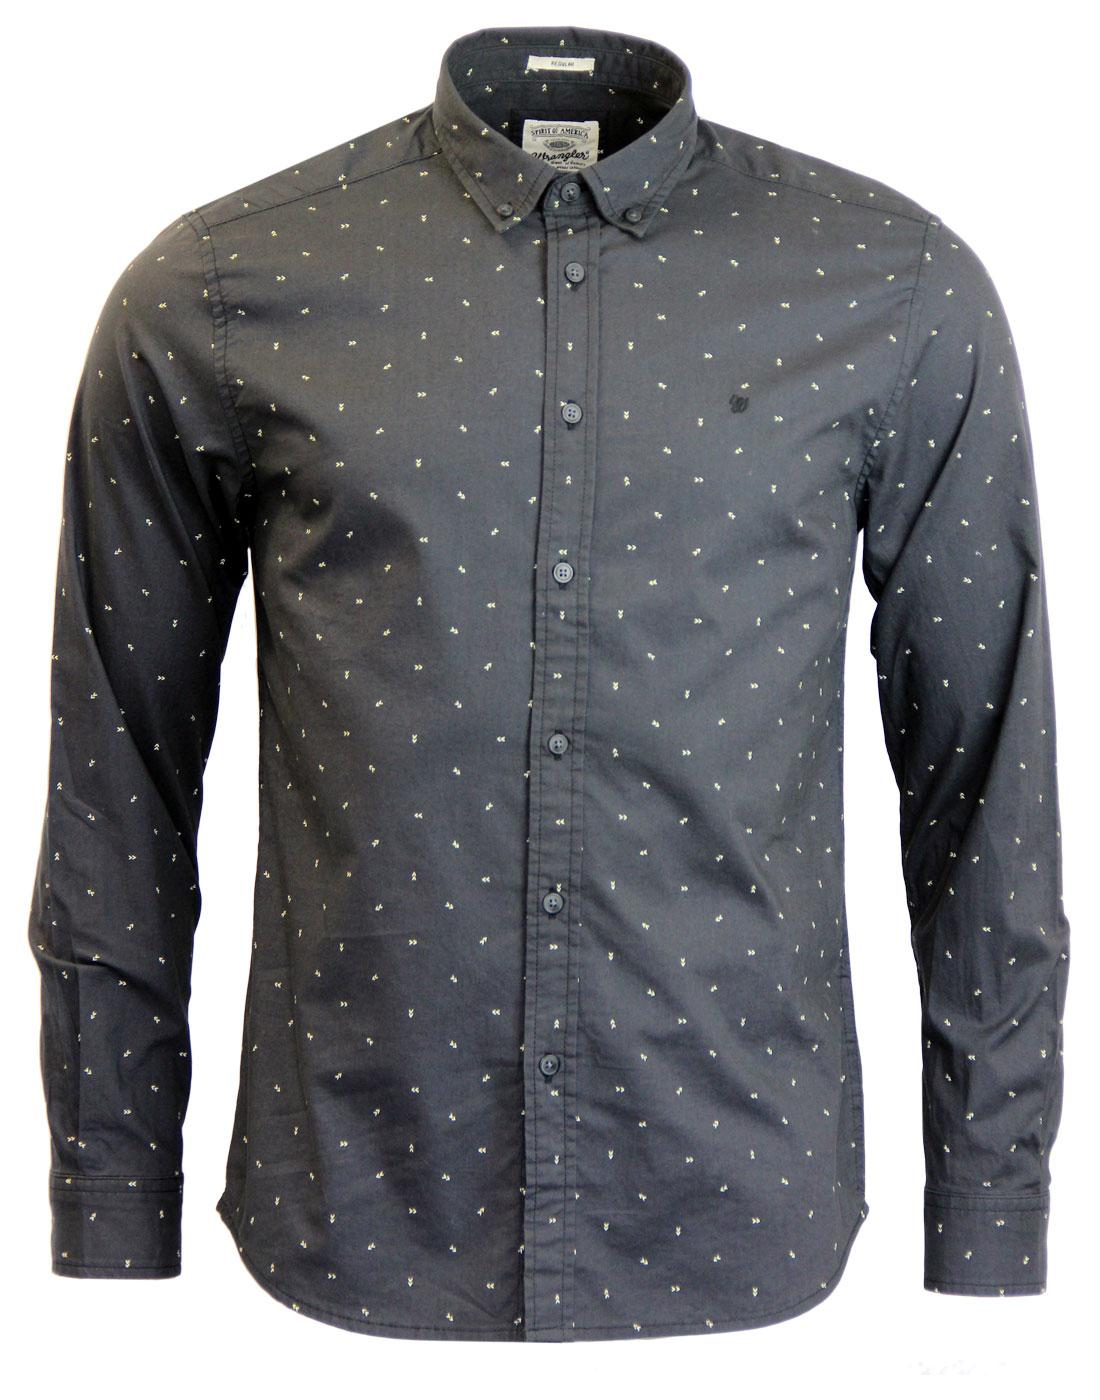 WRANGLER Micro Arrow Print Button Down Retro Shirt